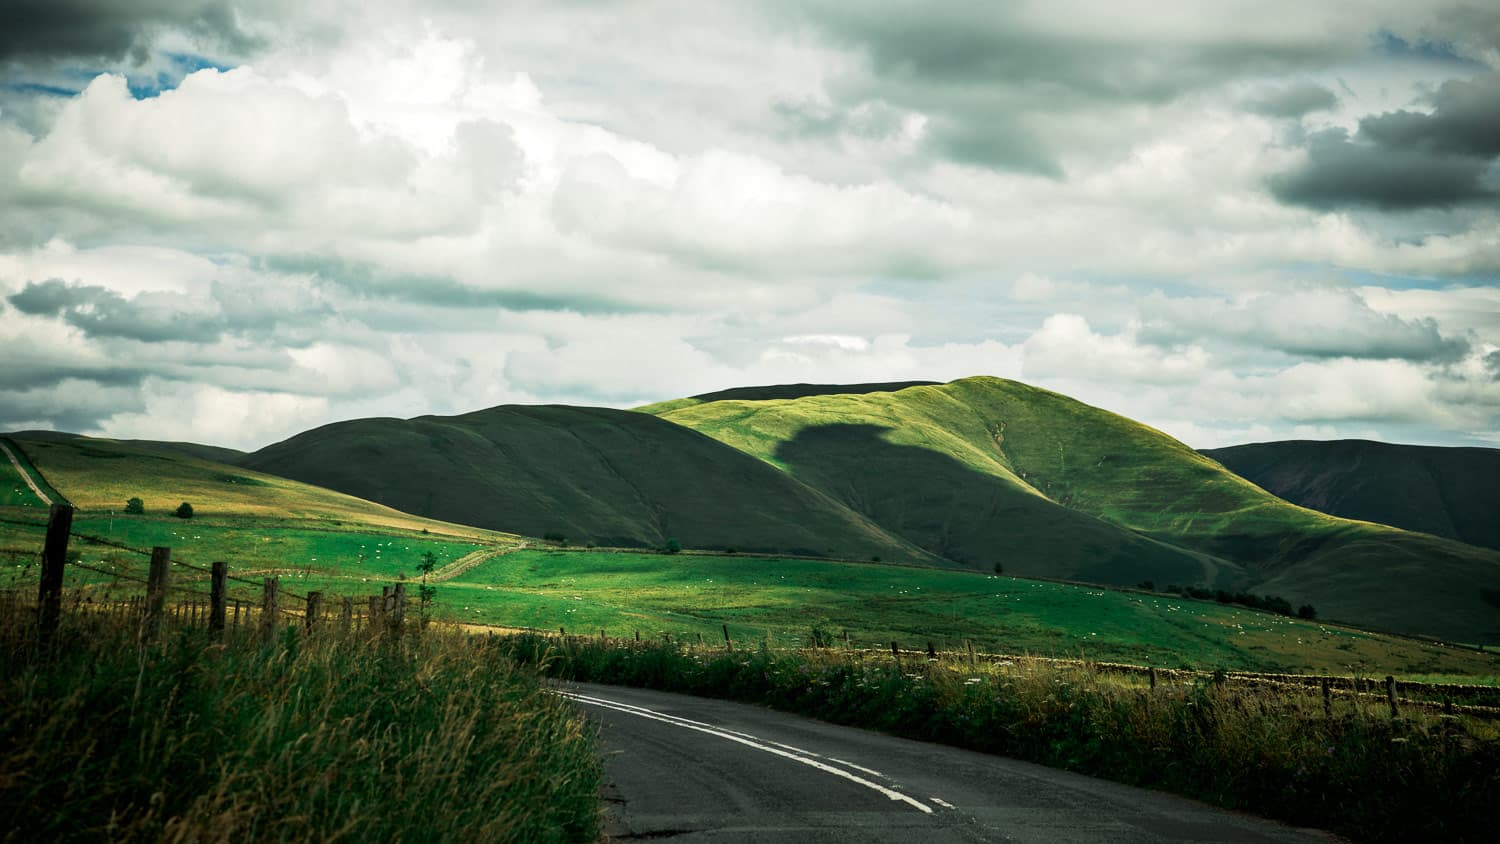 The hillsides of Cumbria on the way to the English Castle we stayed in on our Anniversary